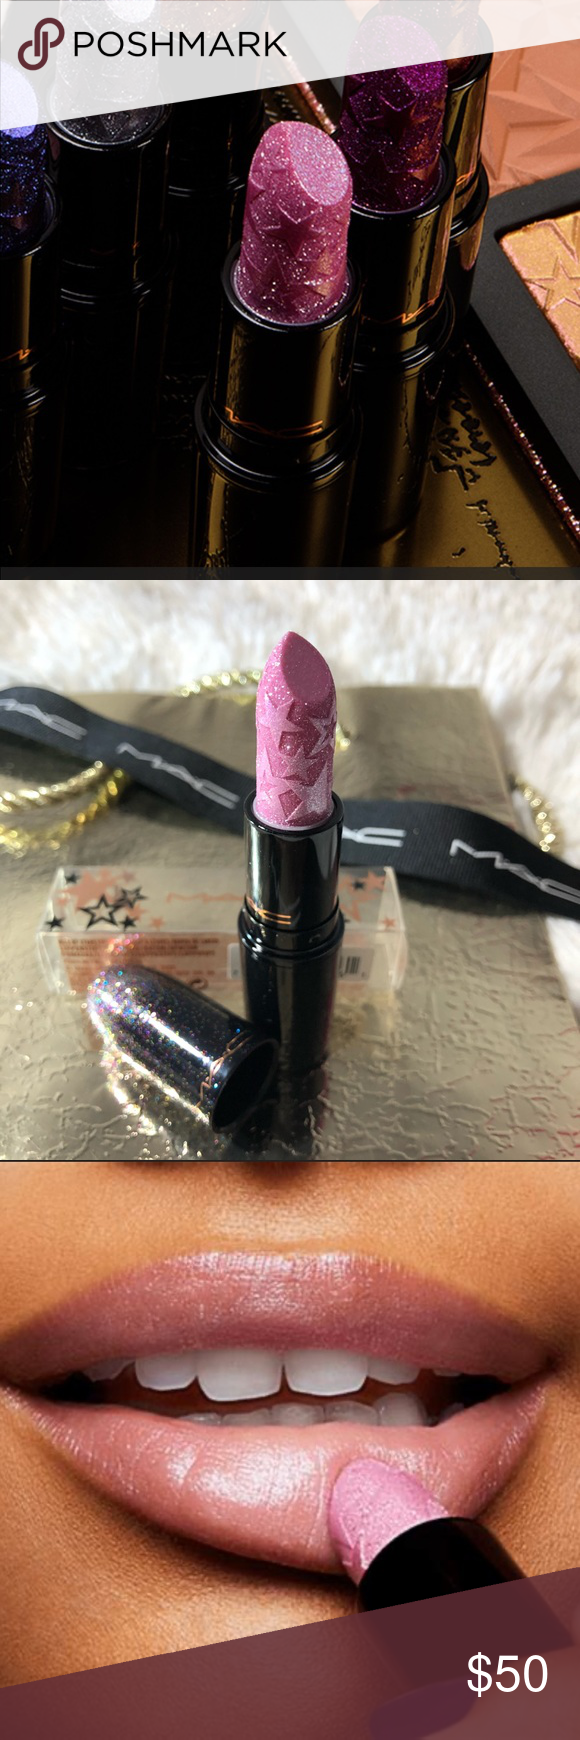 Mac Kiss of stars lipstick new in box&Gift💄 Authentic